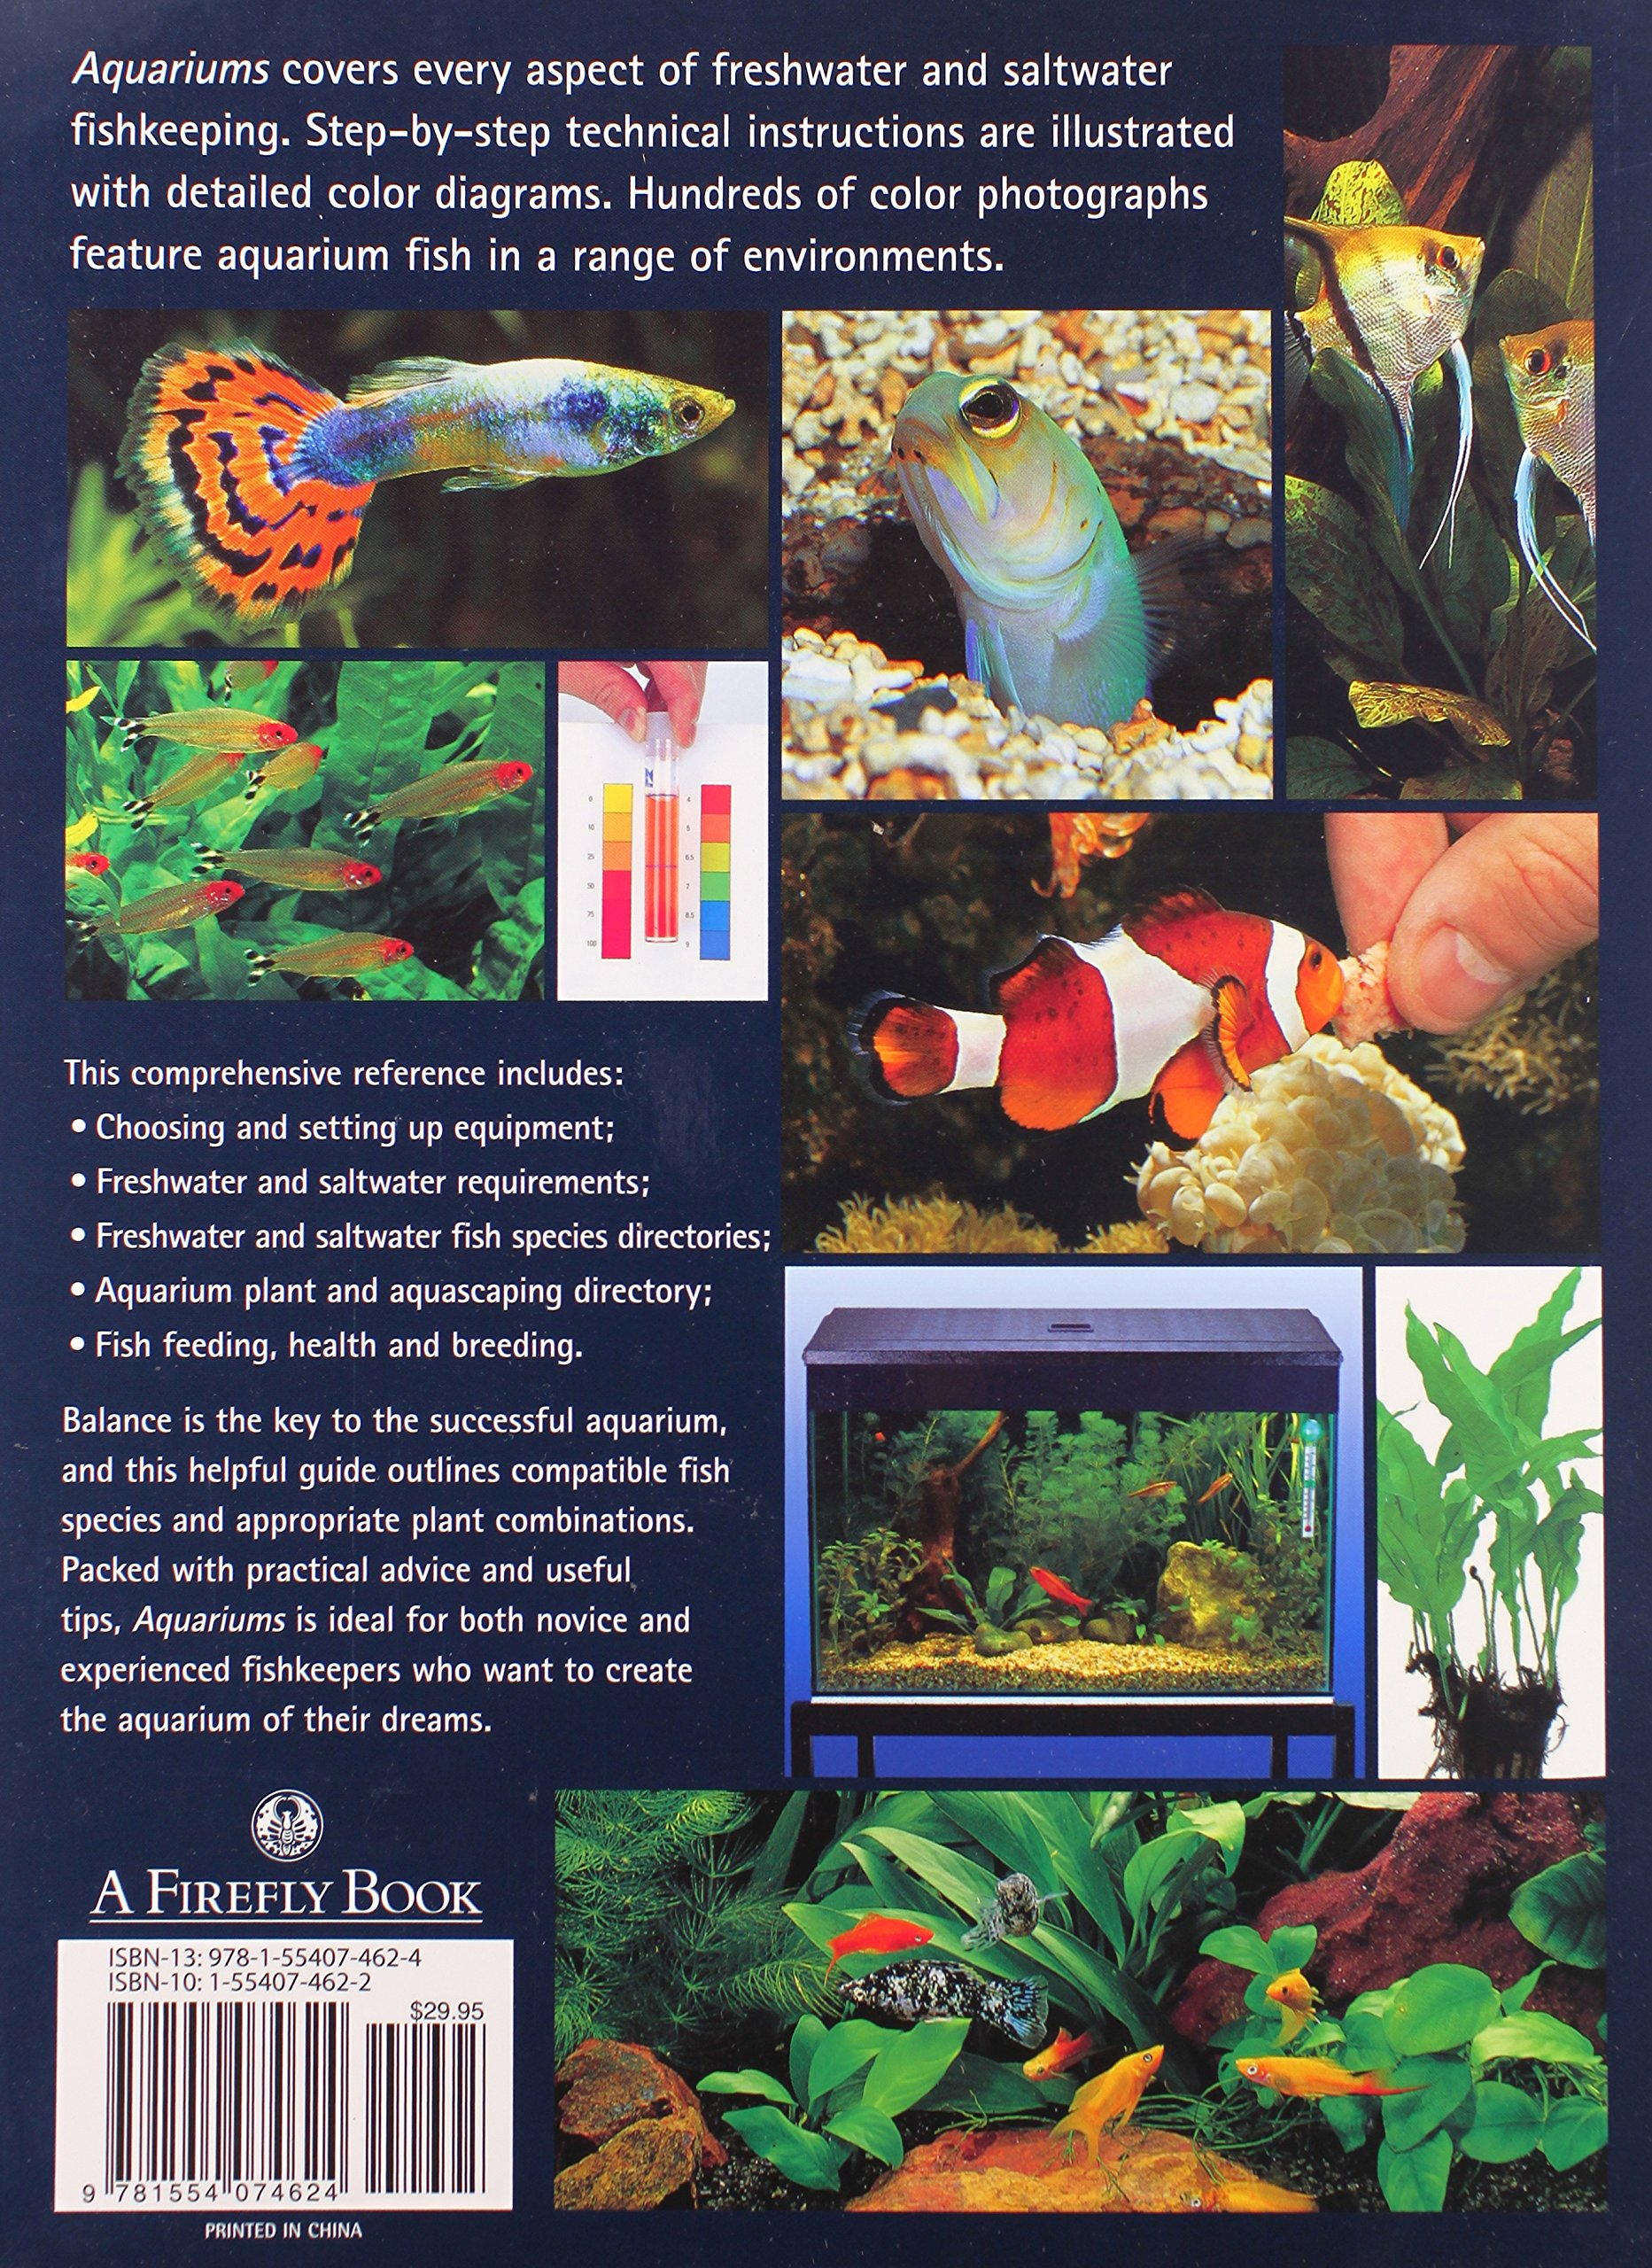 Freshwater fish compatibility chart - Aquariums The Complete Guide To Freshwater And Saltwater Aquariums Thierry Maitre Alain Christian Piednoir 9781554074624 Amazon Com Books